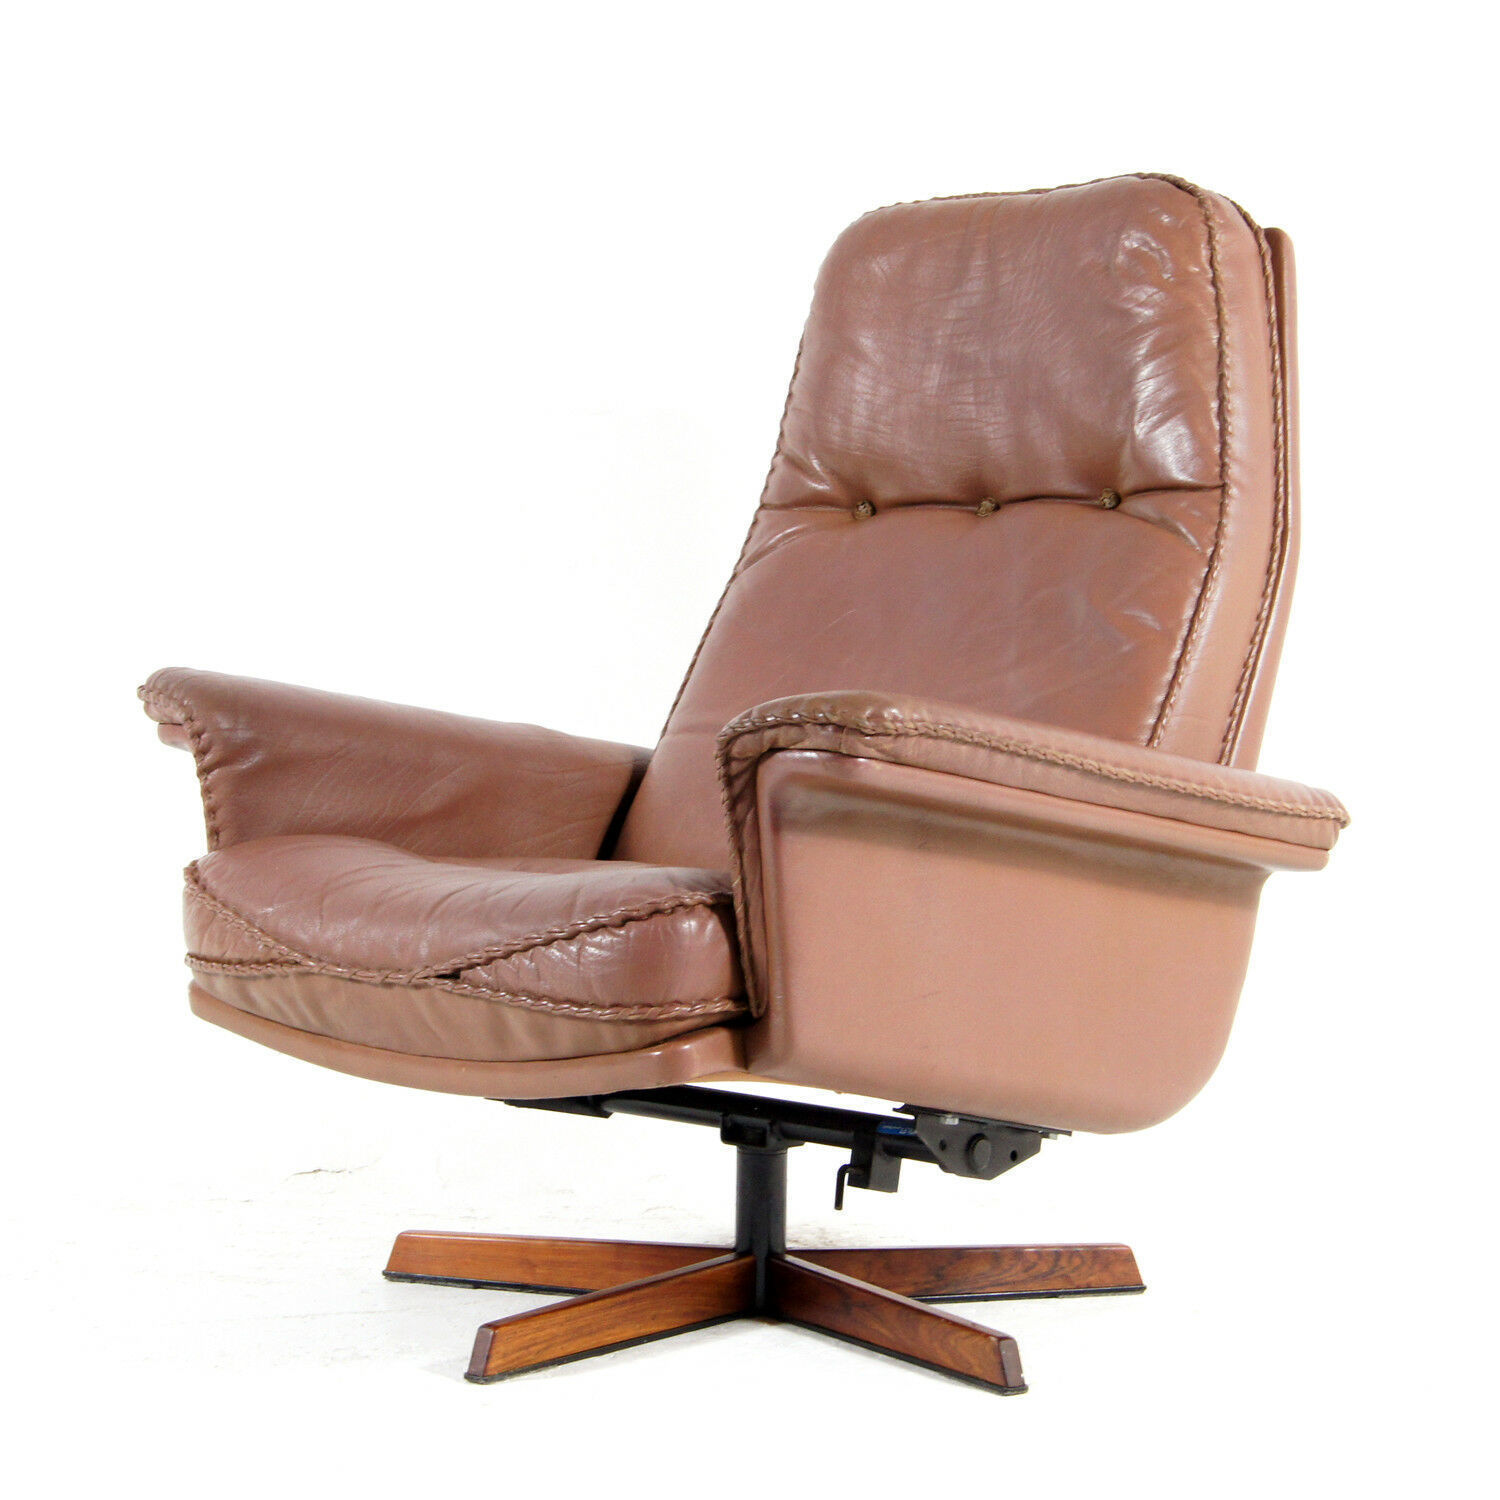 Retro Vintage Danish Recliner Leather Swivel Lounge Egg Chair Armchair 60s 70s